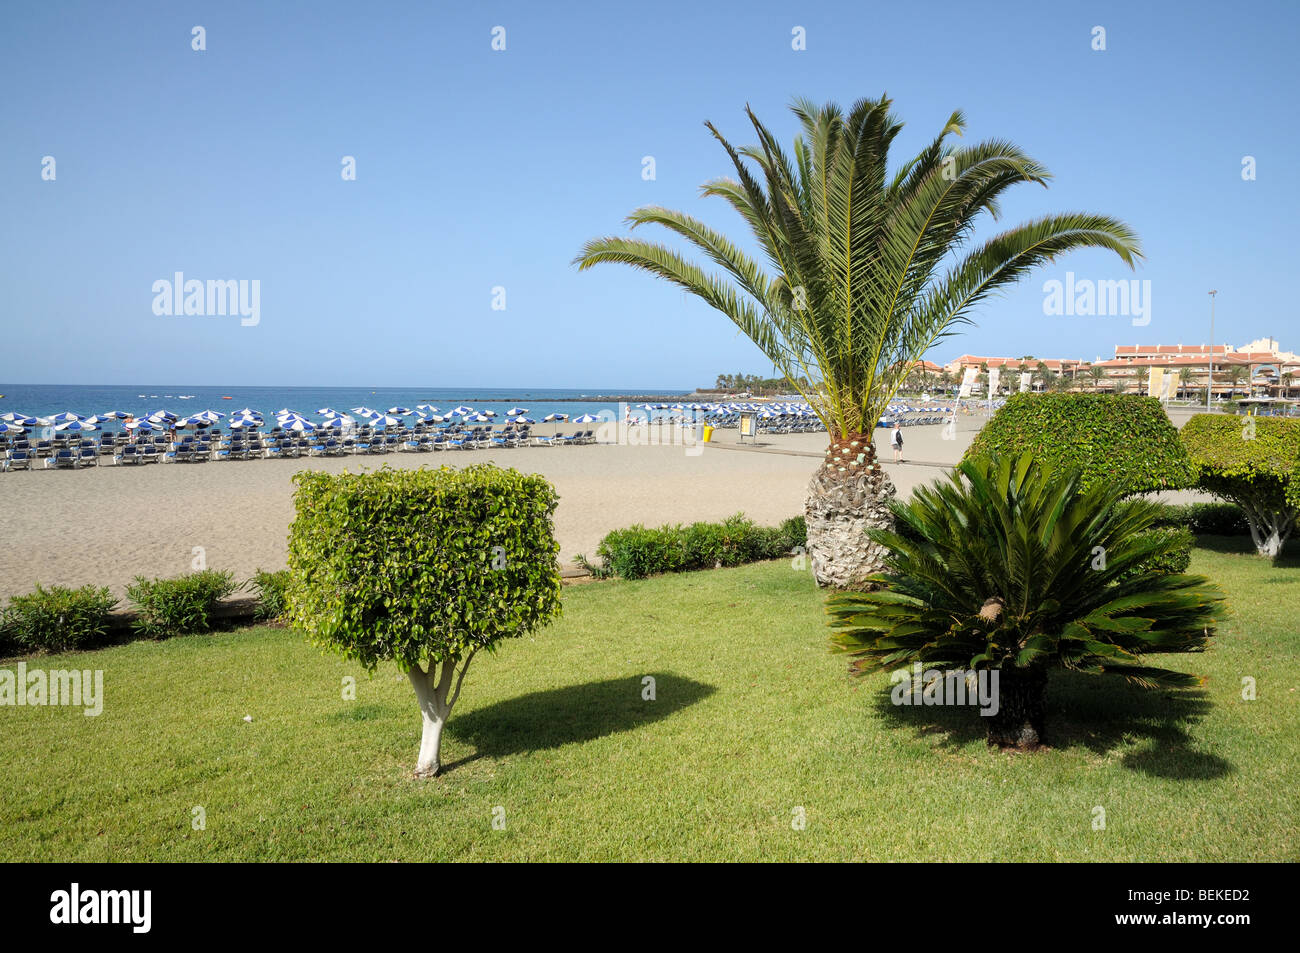 Tenerife Beach Stock Photos Tenerife Beach Stock Images Alamy